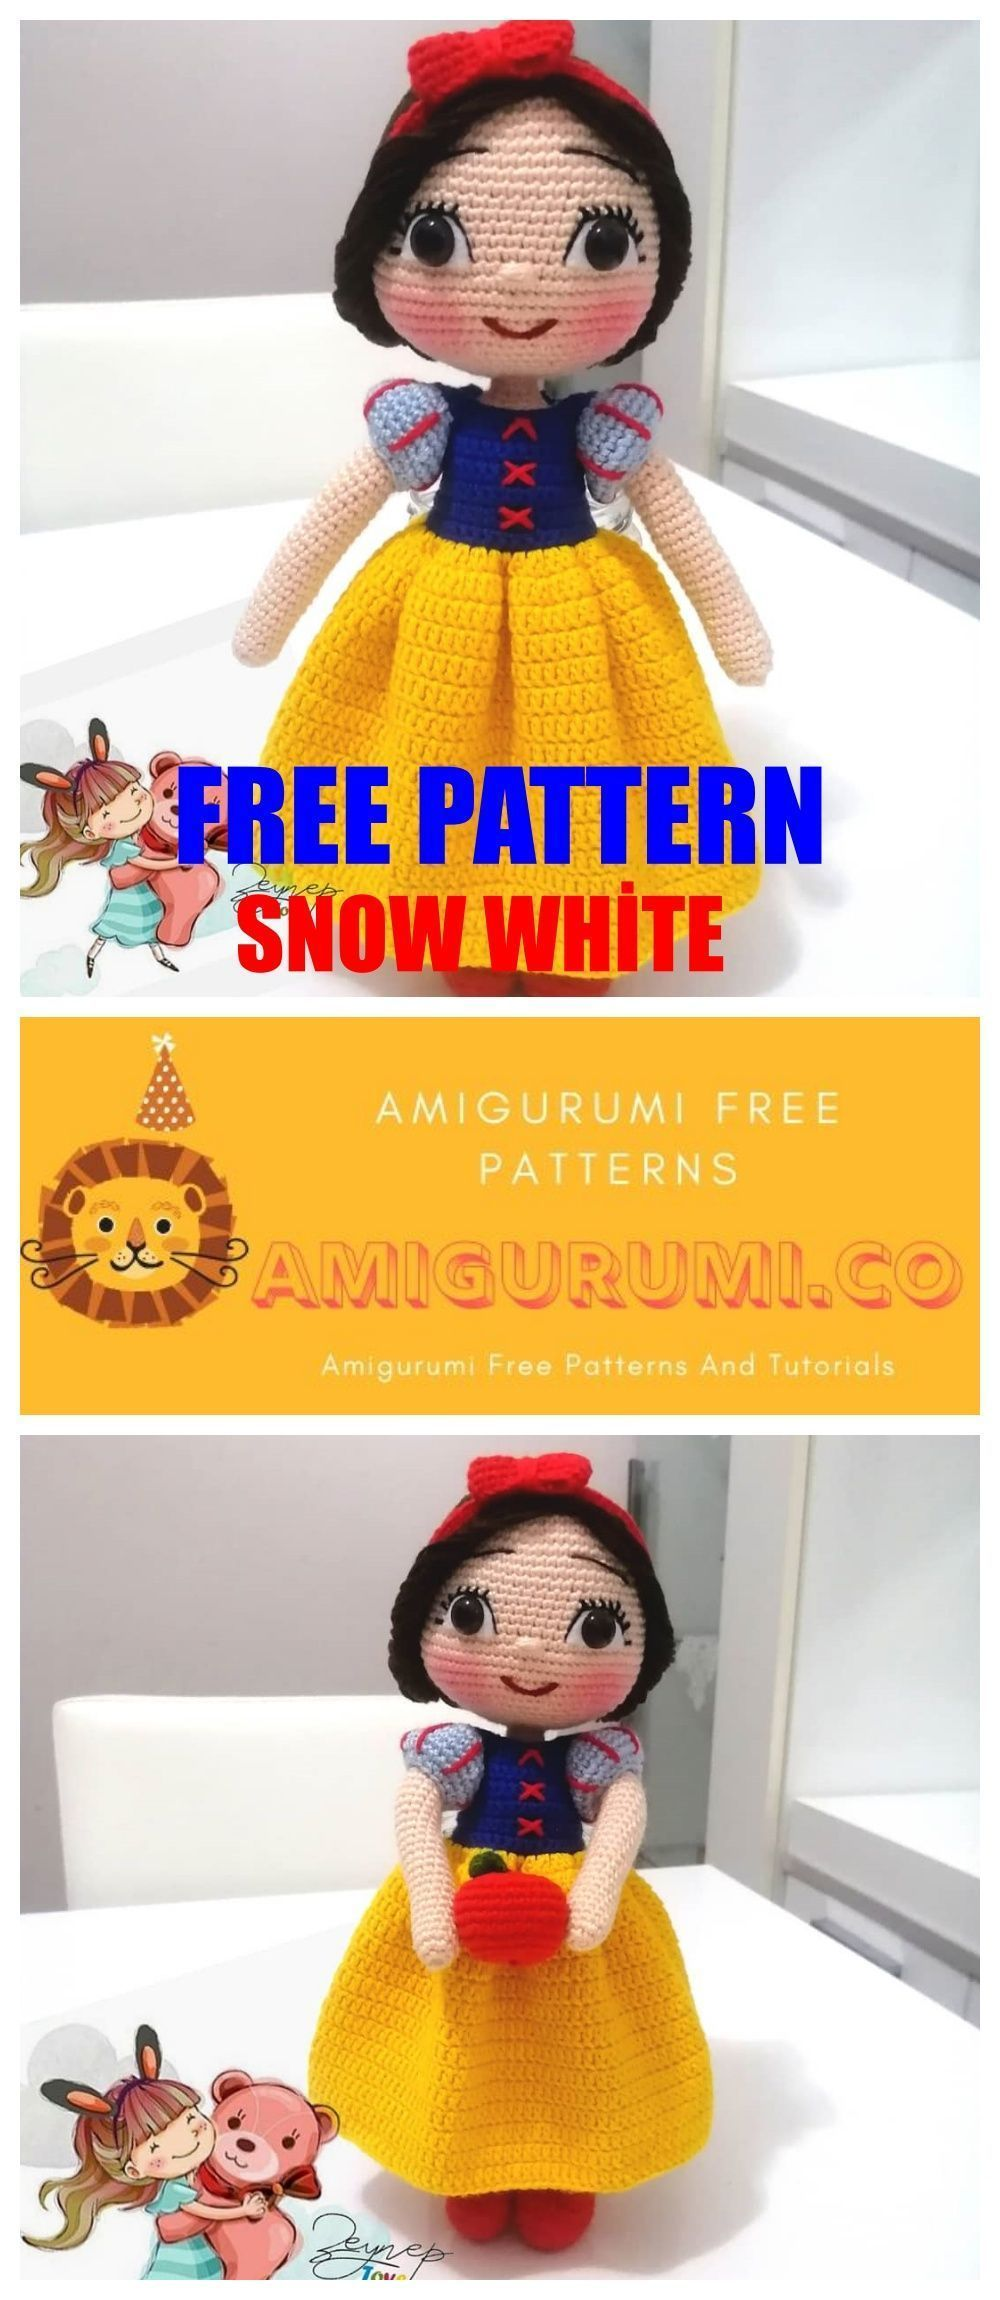 Photo of Amigurumi Snow White Free Crochet Pattern – Amigurumi Co,  #Amigurumi #Crochet #…